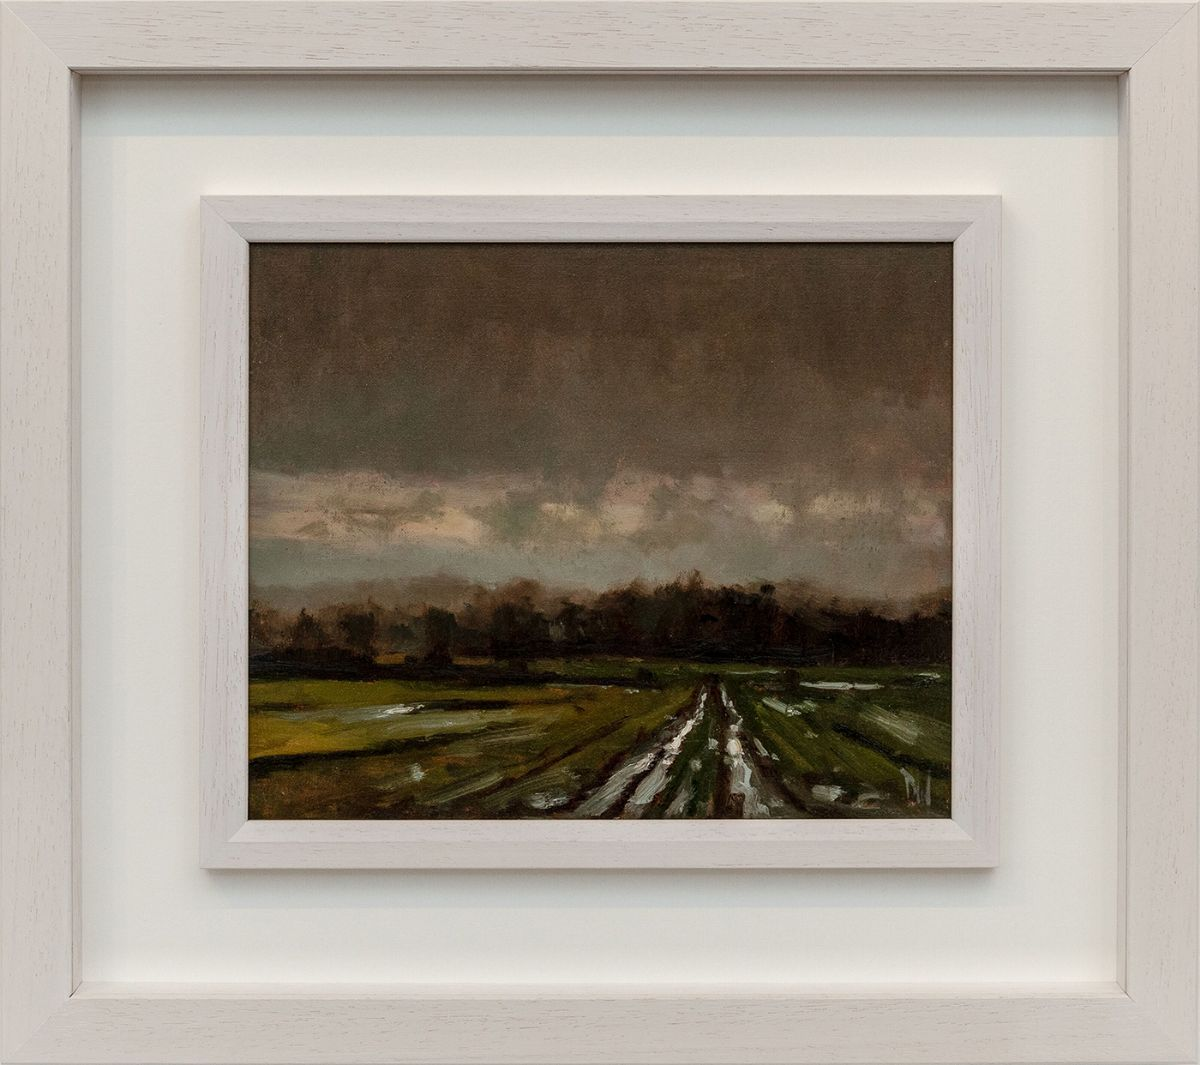 Waterlogged Field, (Donabate)   by Dave West